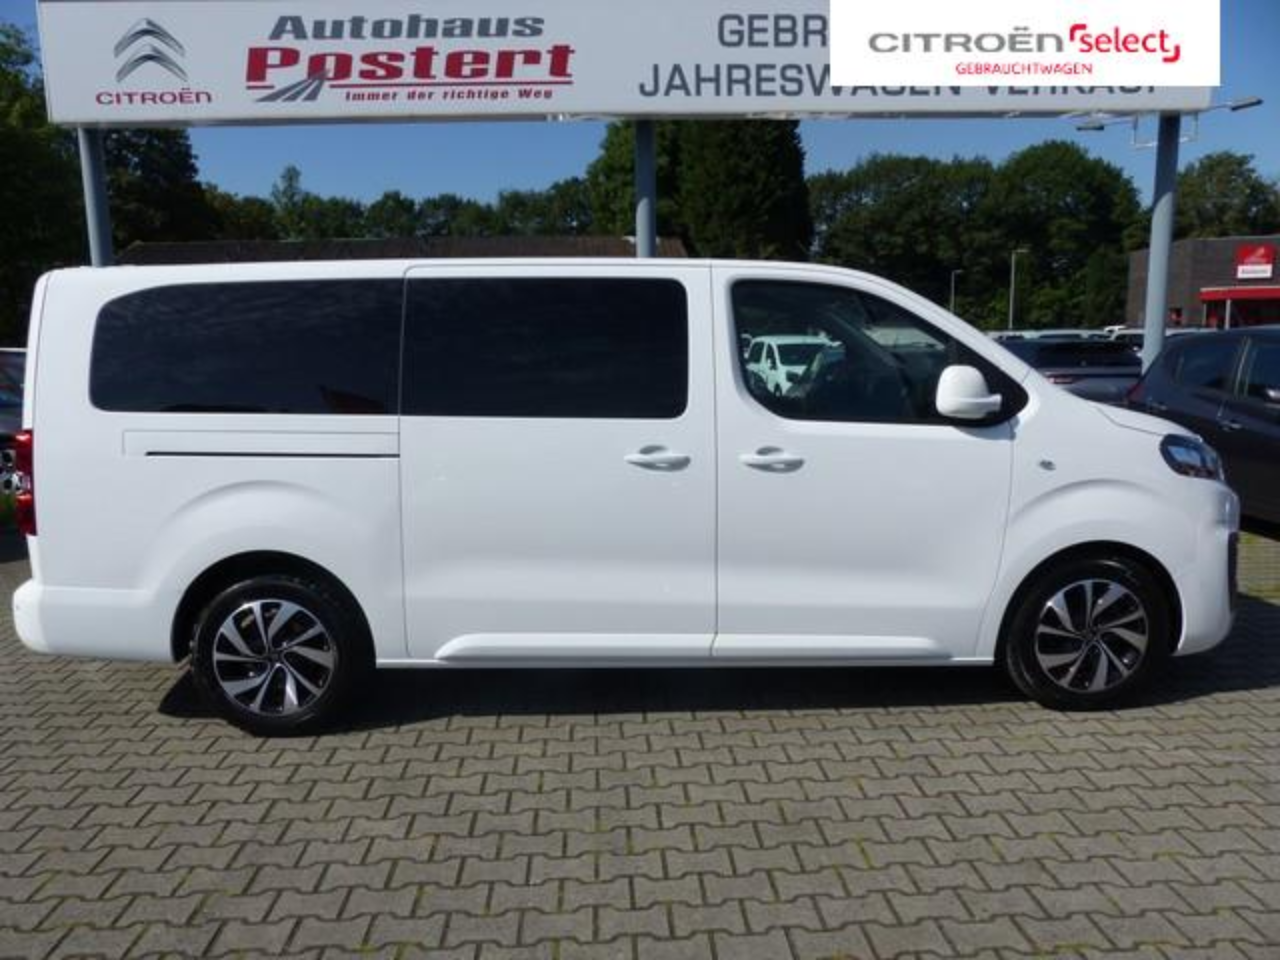 Citroën Spacetourer 2.0 BlueHDi 180 XL Business S&S(EU 6d-T) 9-Sitze